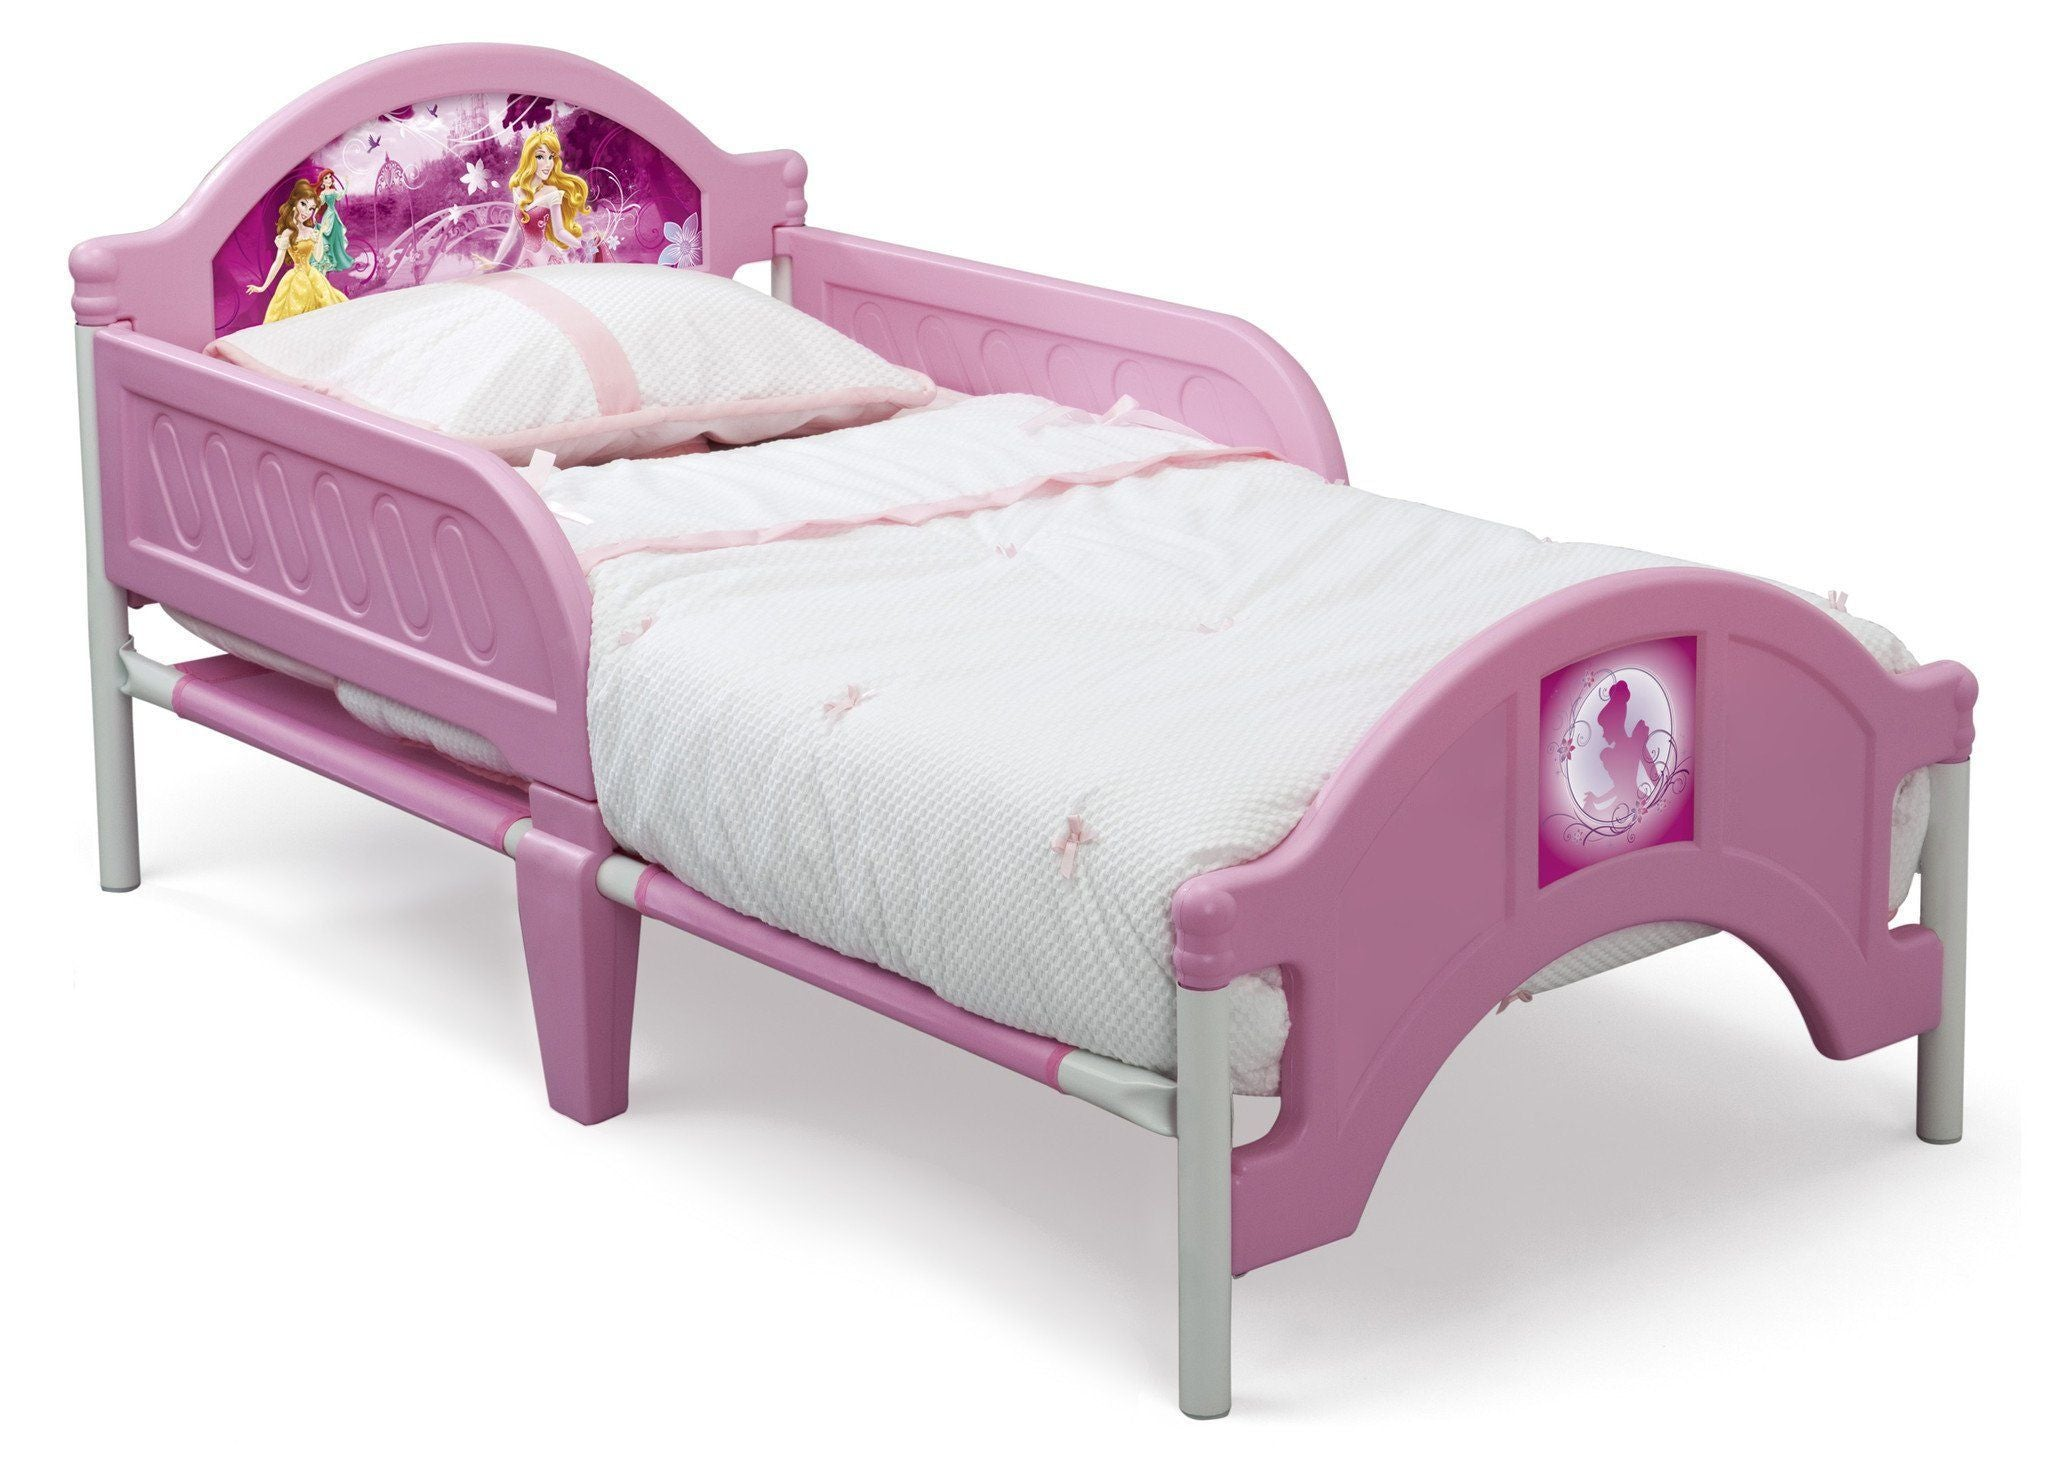 Disney Princess Toddler Bed Delta Children